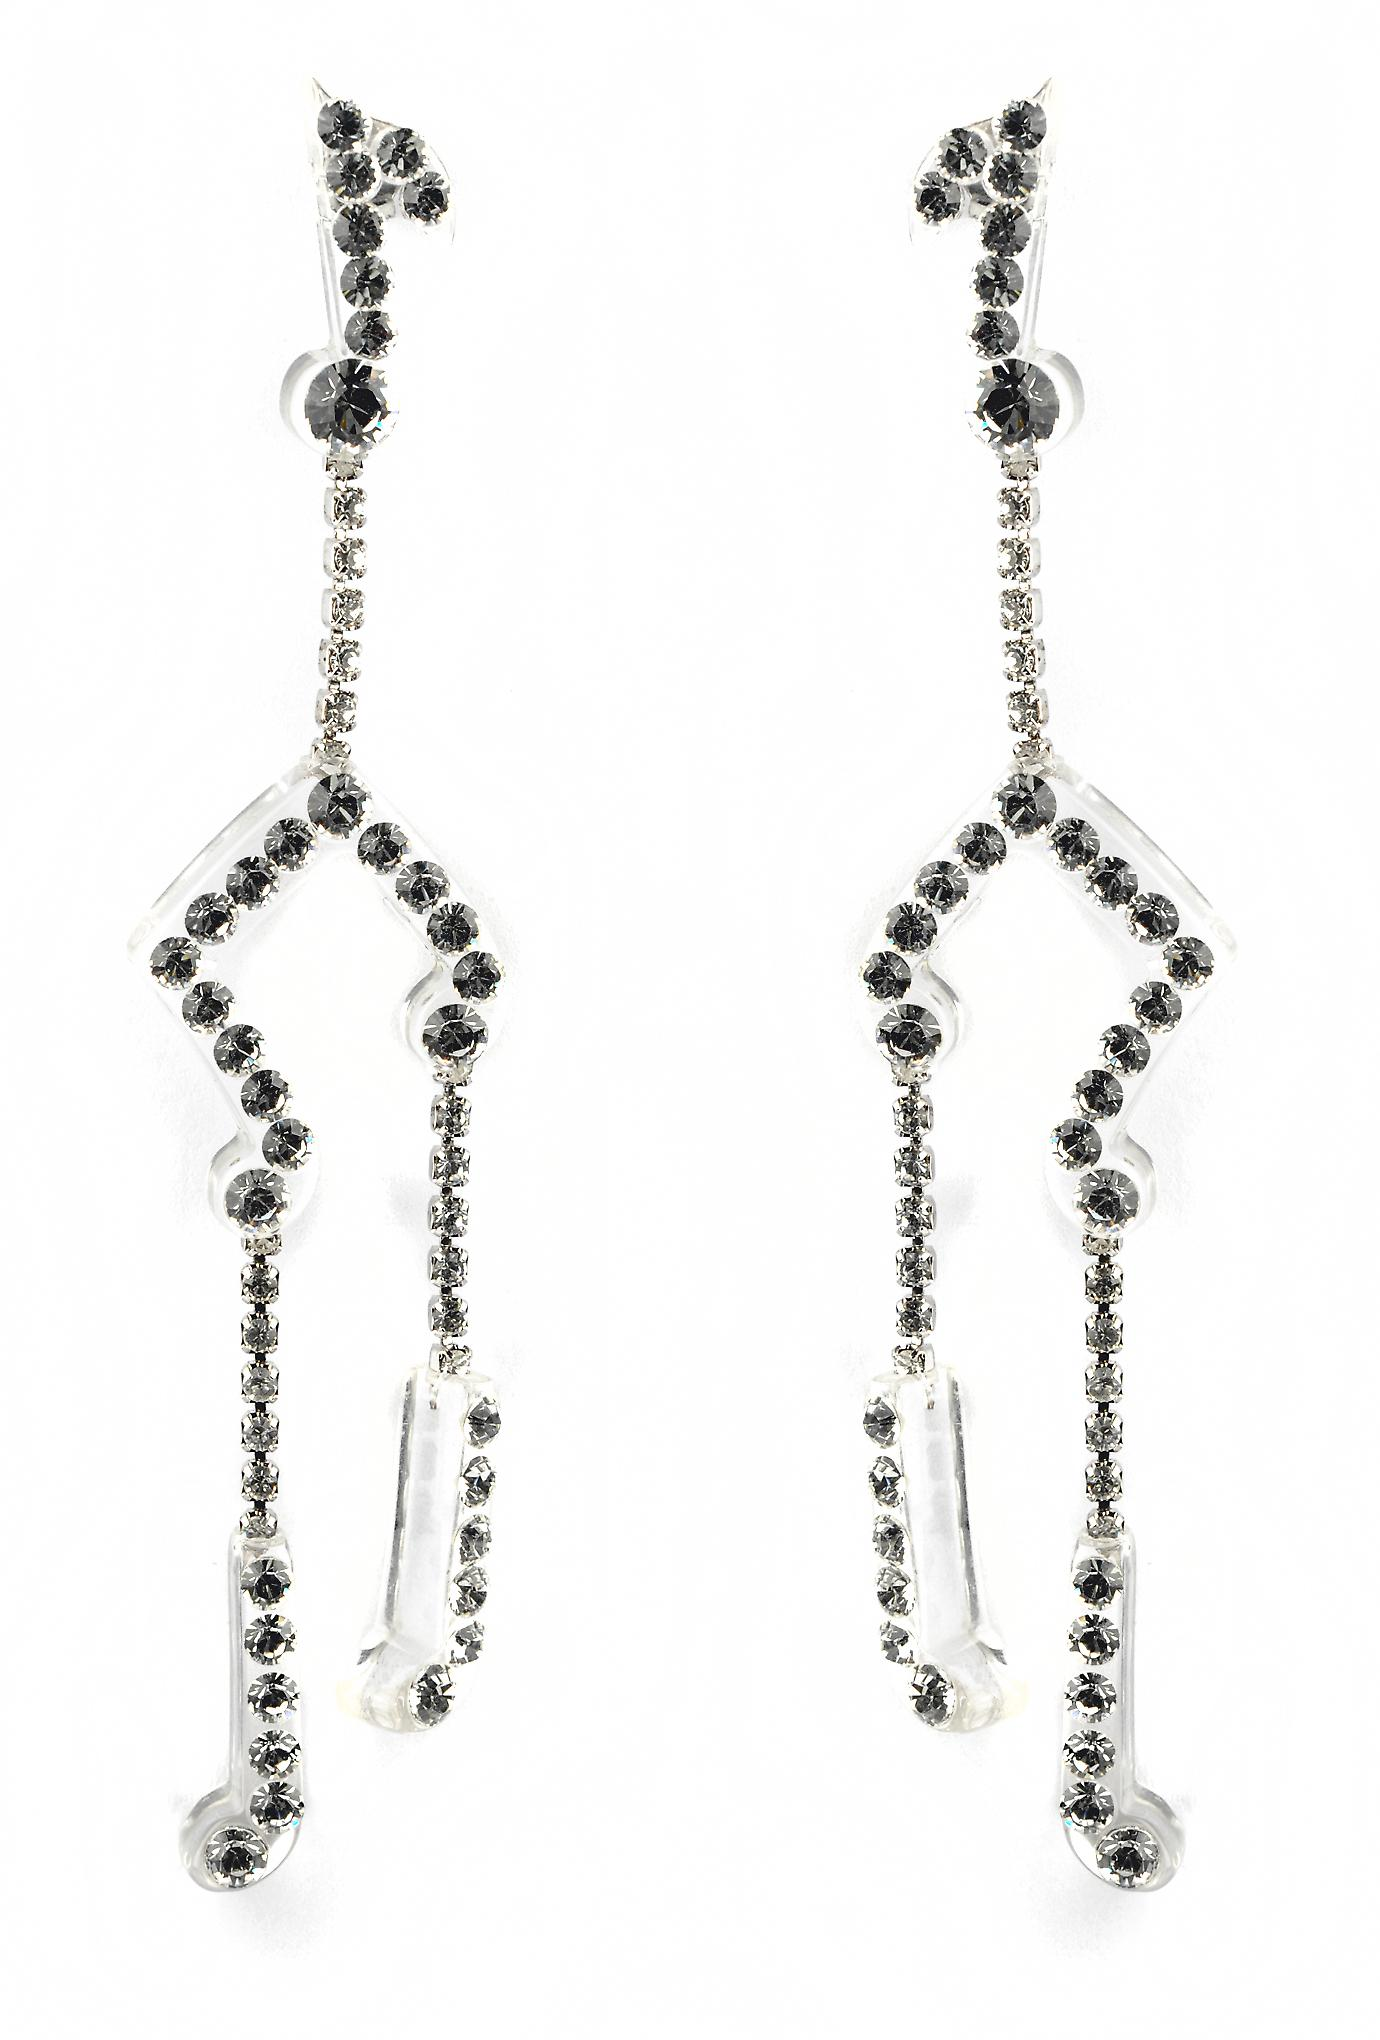 Waooh - jewelry - WJ0700 - earrings with Rhinestone Swarovski black gloss on Mount White Transparent Perspex